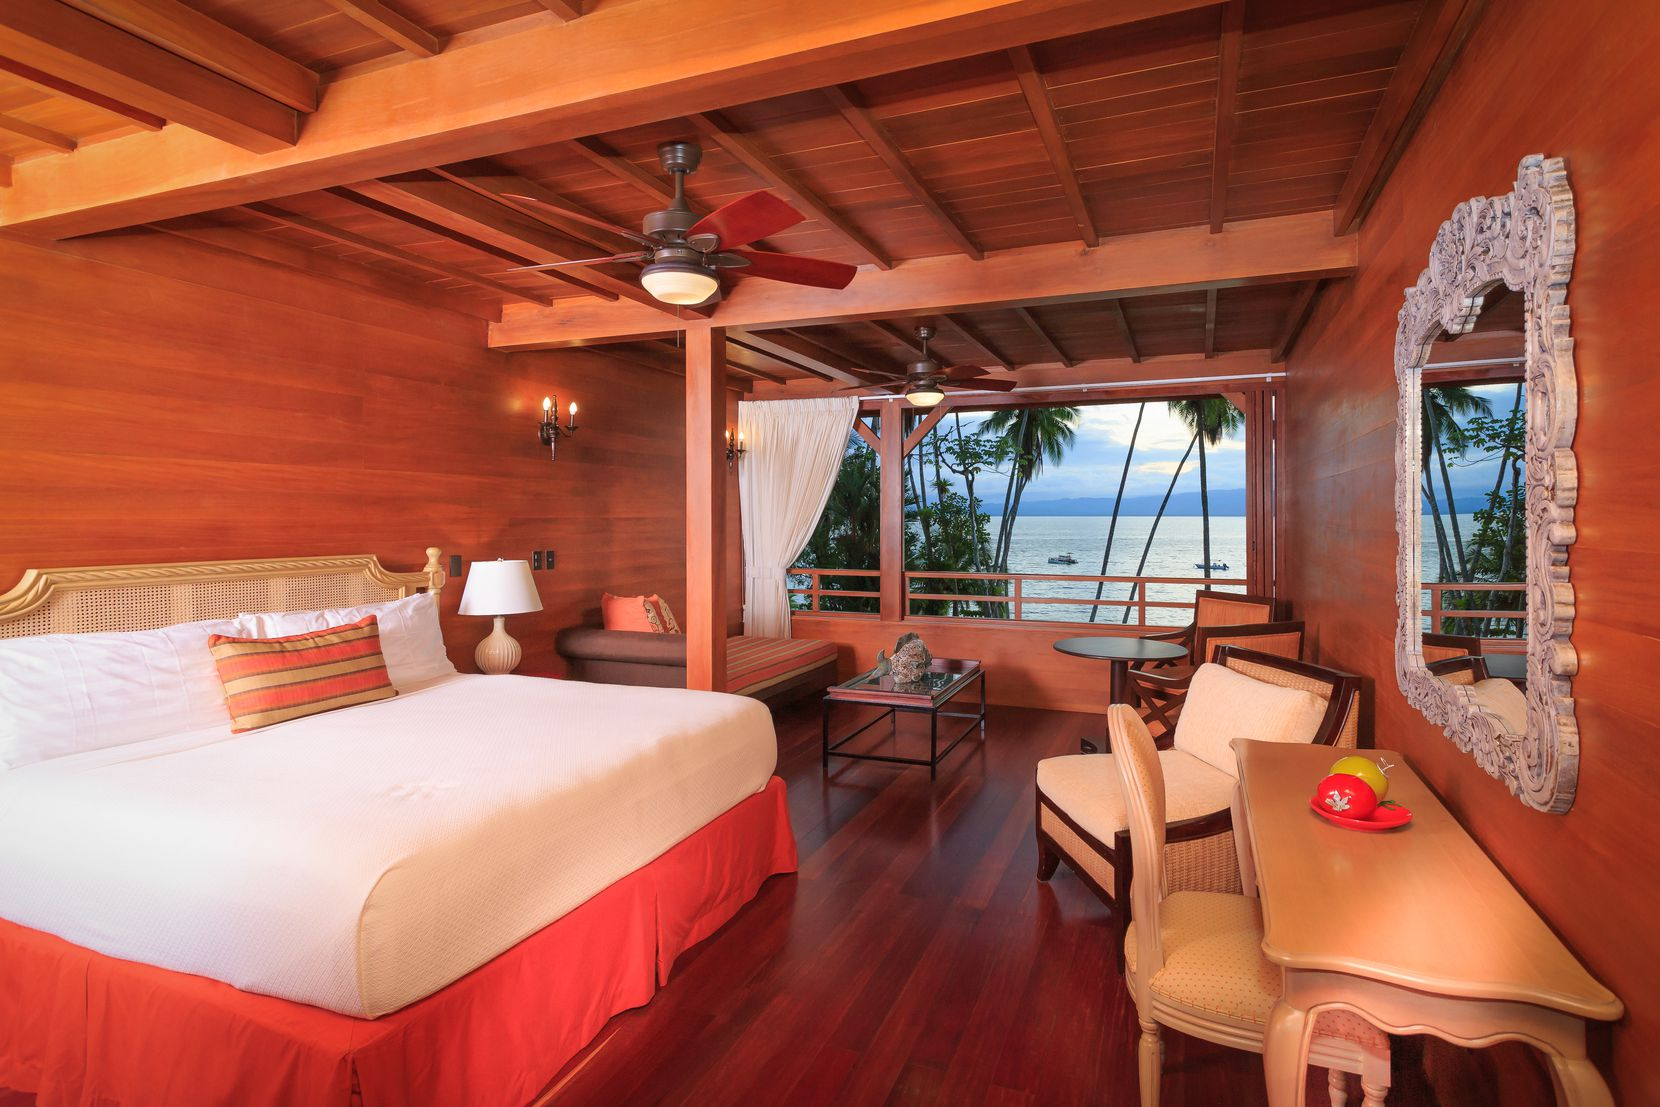 Playa Cativo Lodge offers 18 guest rooms with dark wood facades.